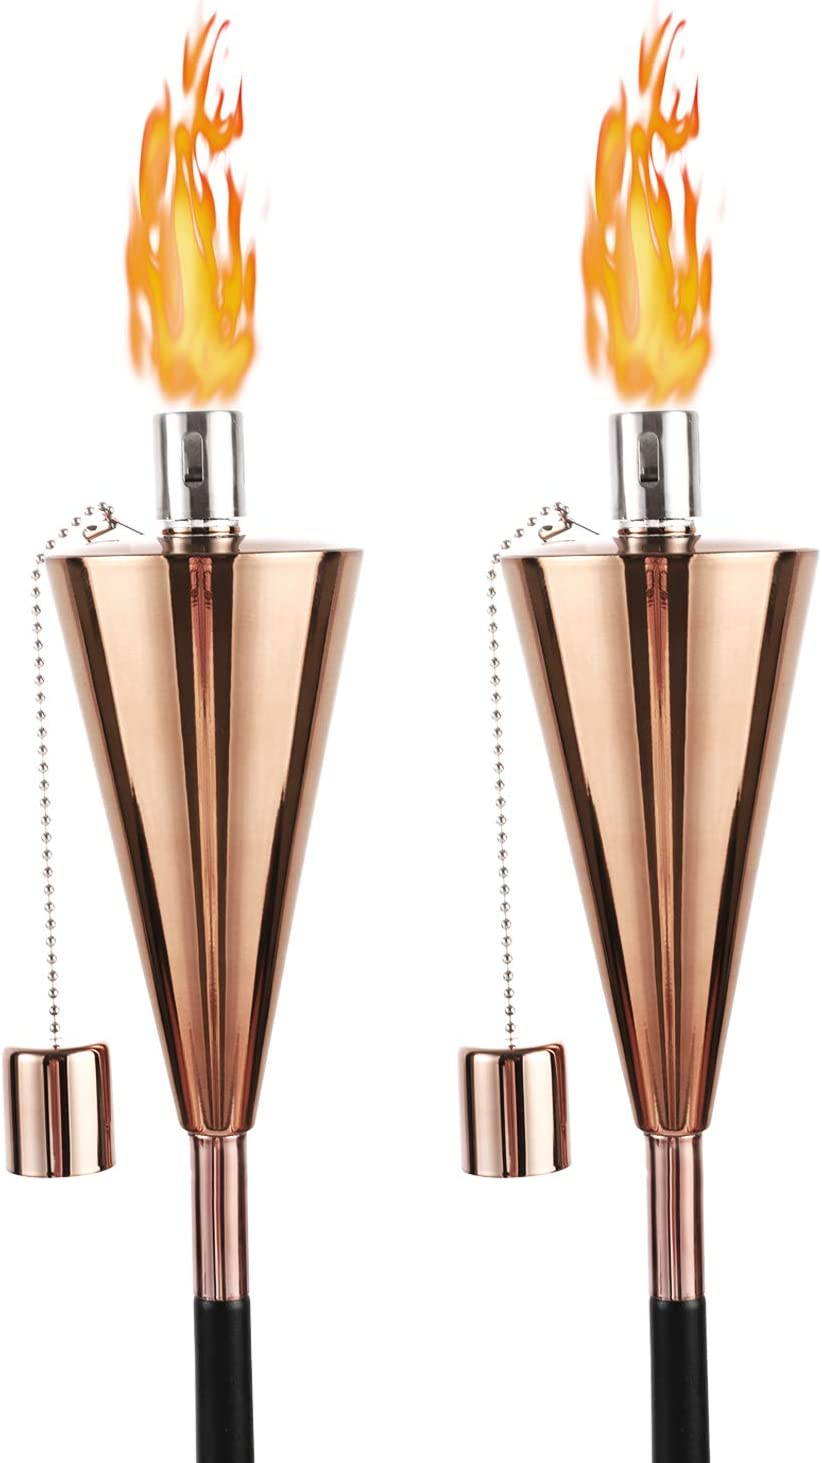 FAB BASED Set of 2 Citronella Torches Outdoor,55 inch Mosquito Torch for Patio/Backyard/Garden, Oil Lamps Real Flame (Rose Golden